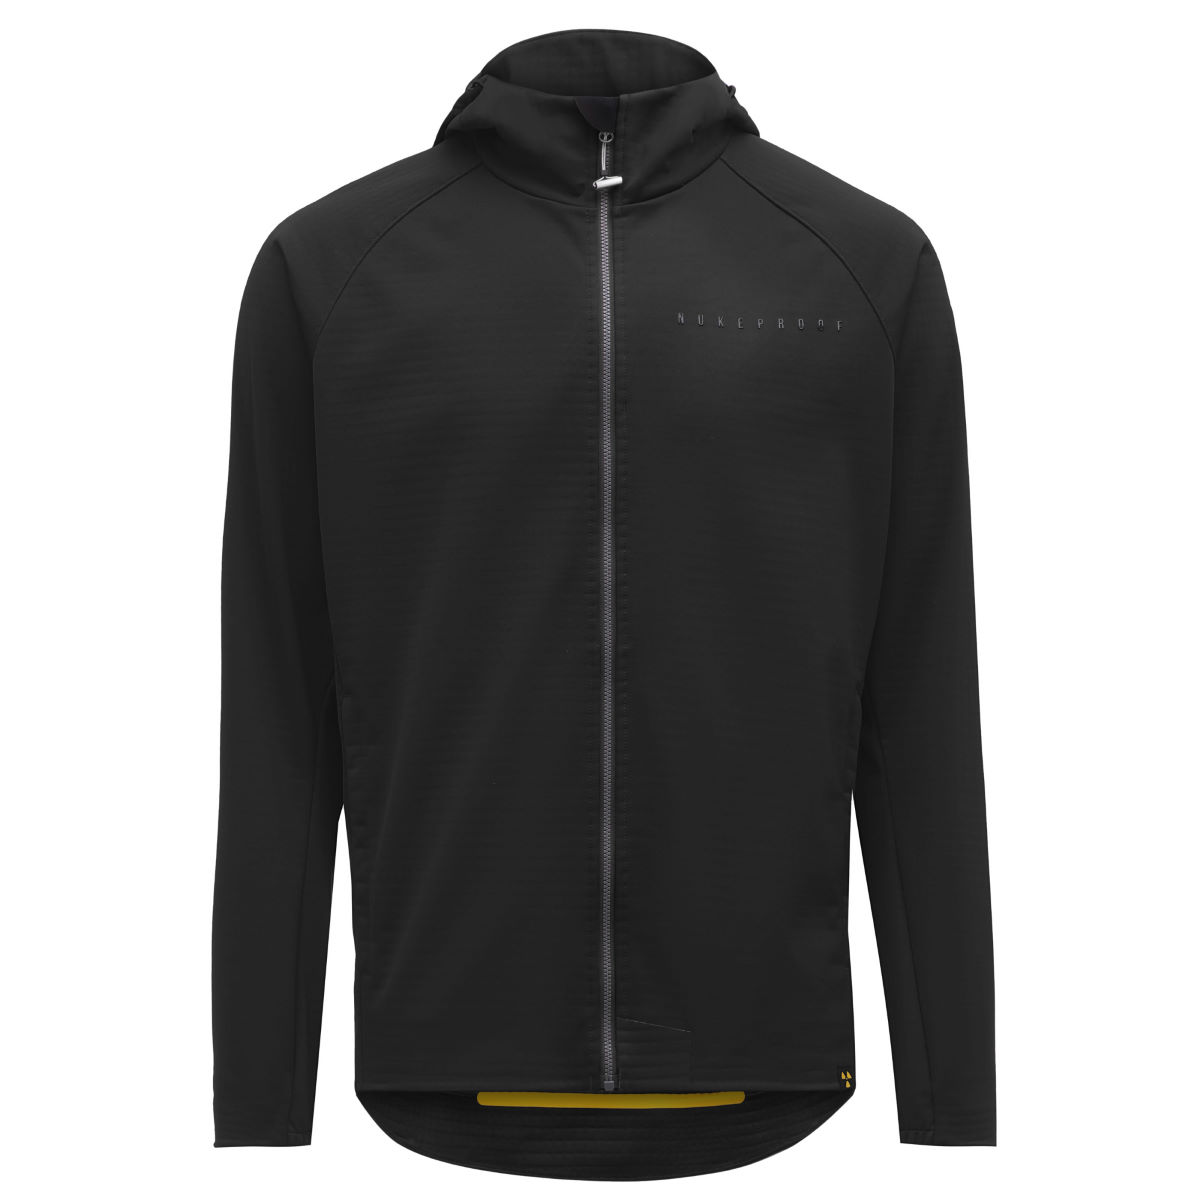 Nukeproof Nukeproof Blackline Softshell Jacket   Jackets